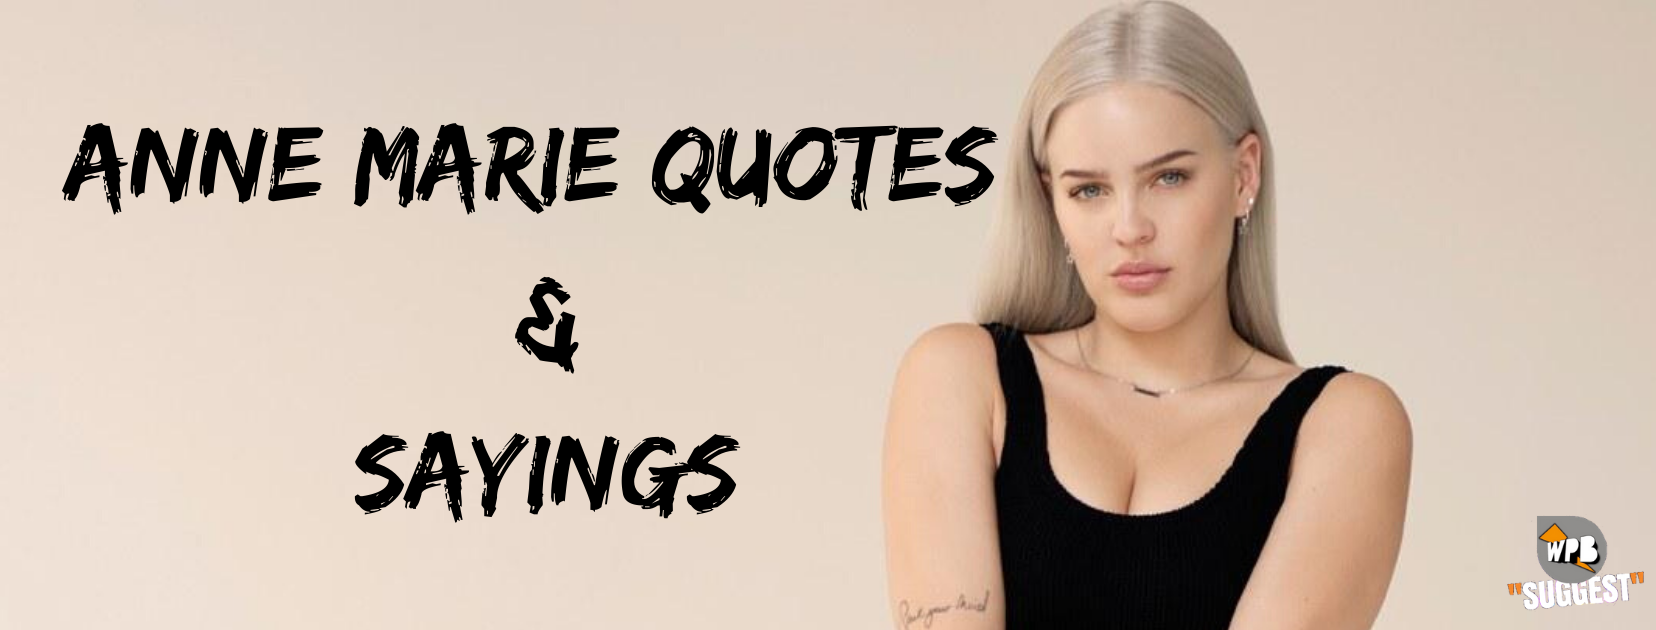 Anne Marie Quotes Sayings 150 Captions For Instagram With Images